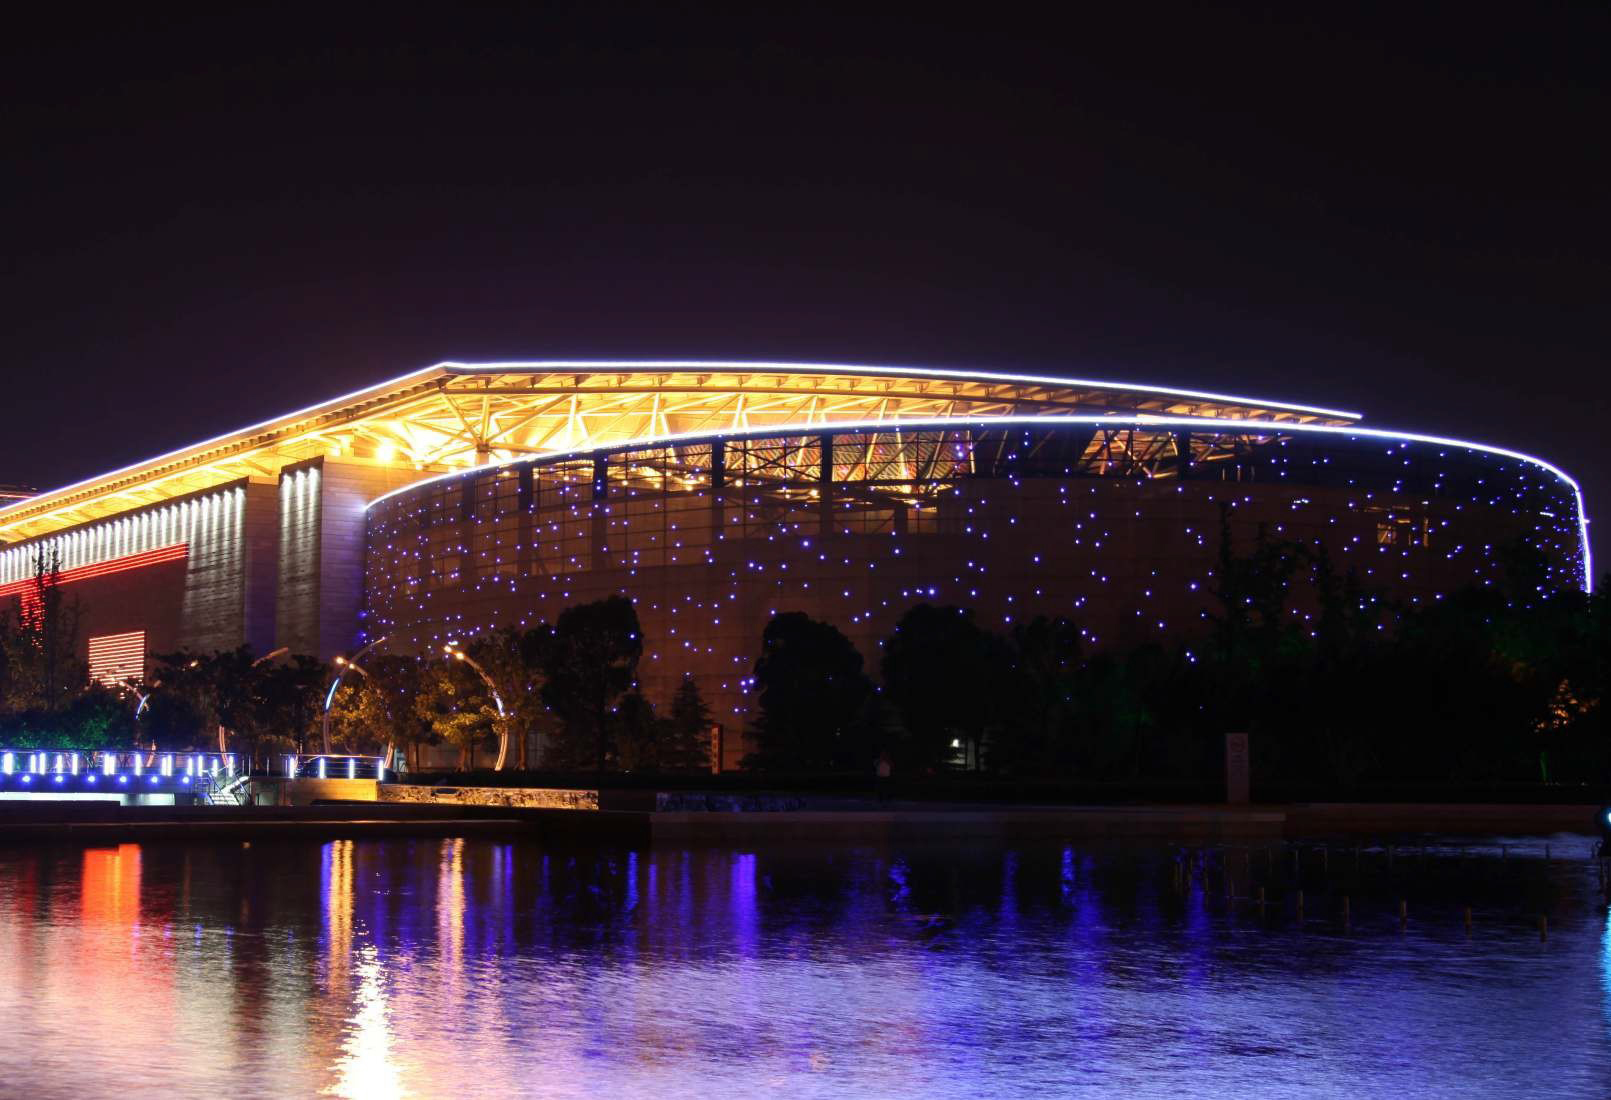 Suzhou Intl Expo Center